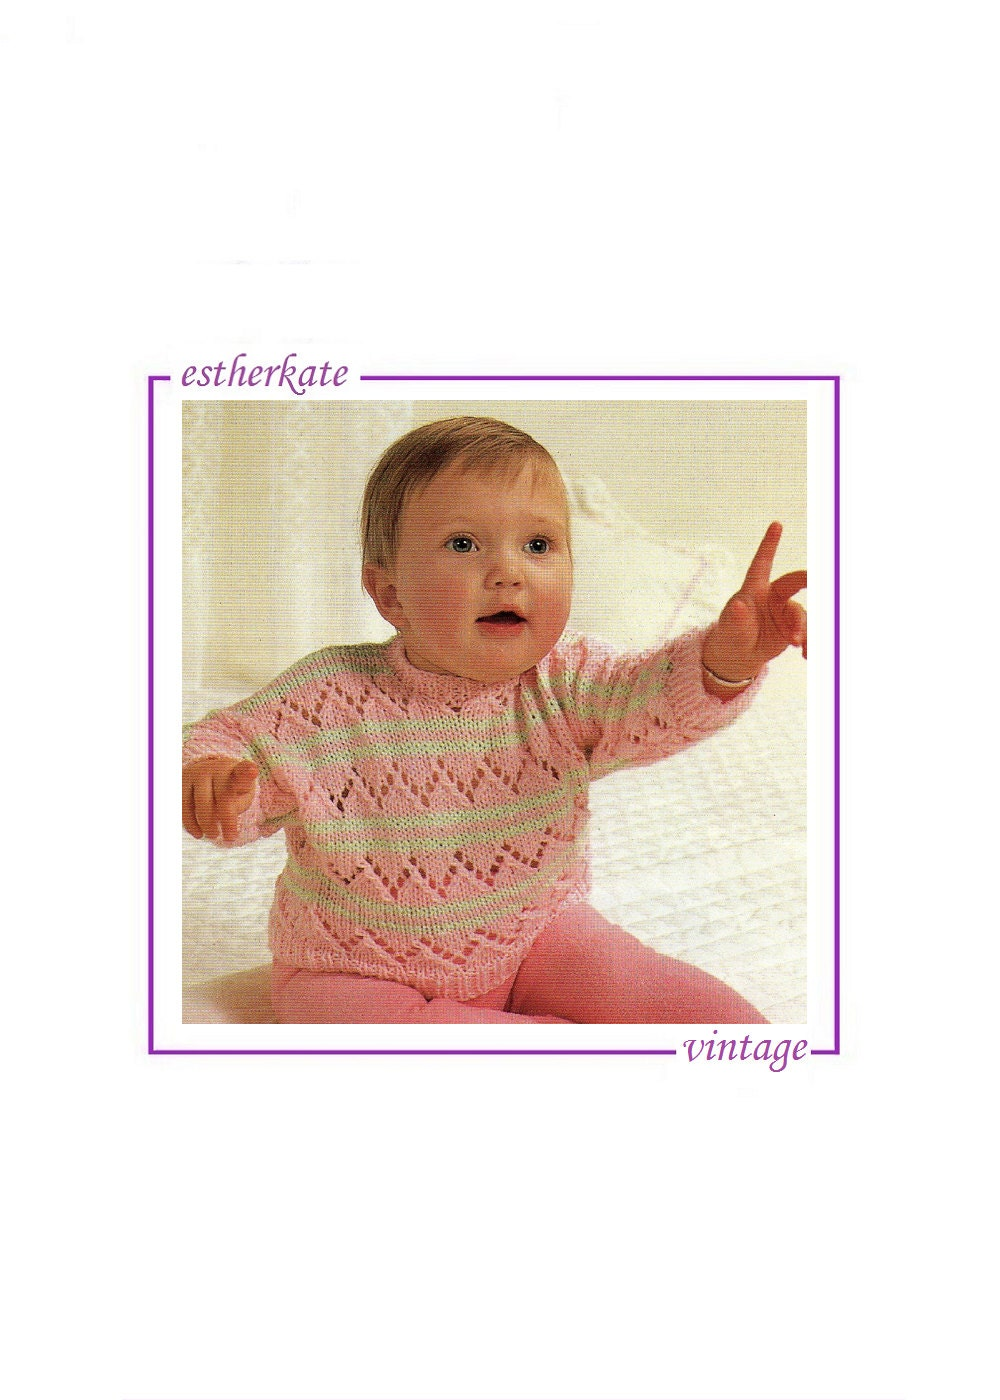 VINTAGE machine knitting pattern pdf lace sweater for baby 18  22 inch chest INSTANT DOWNLOAD